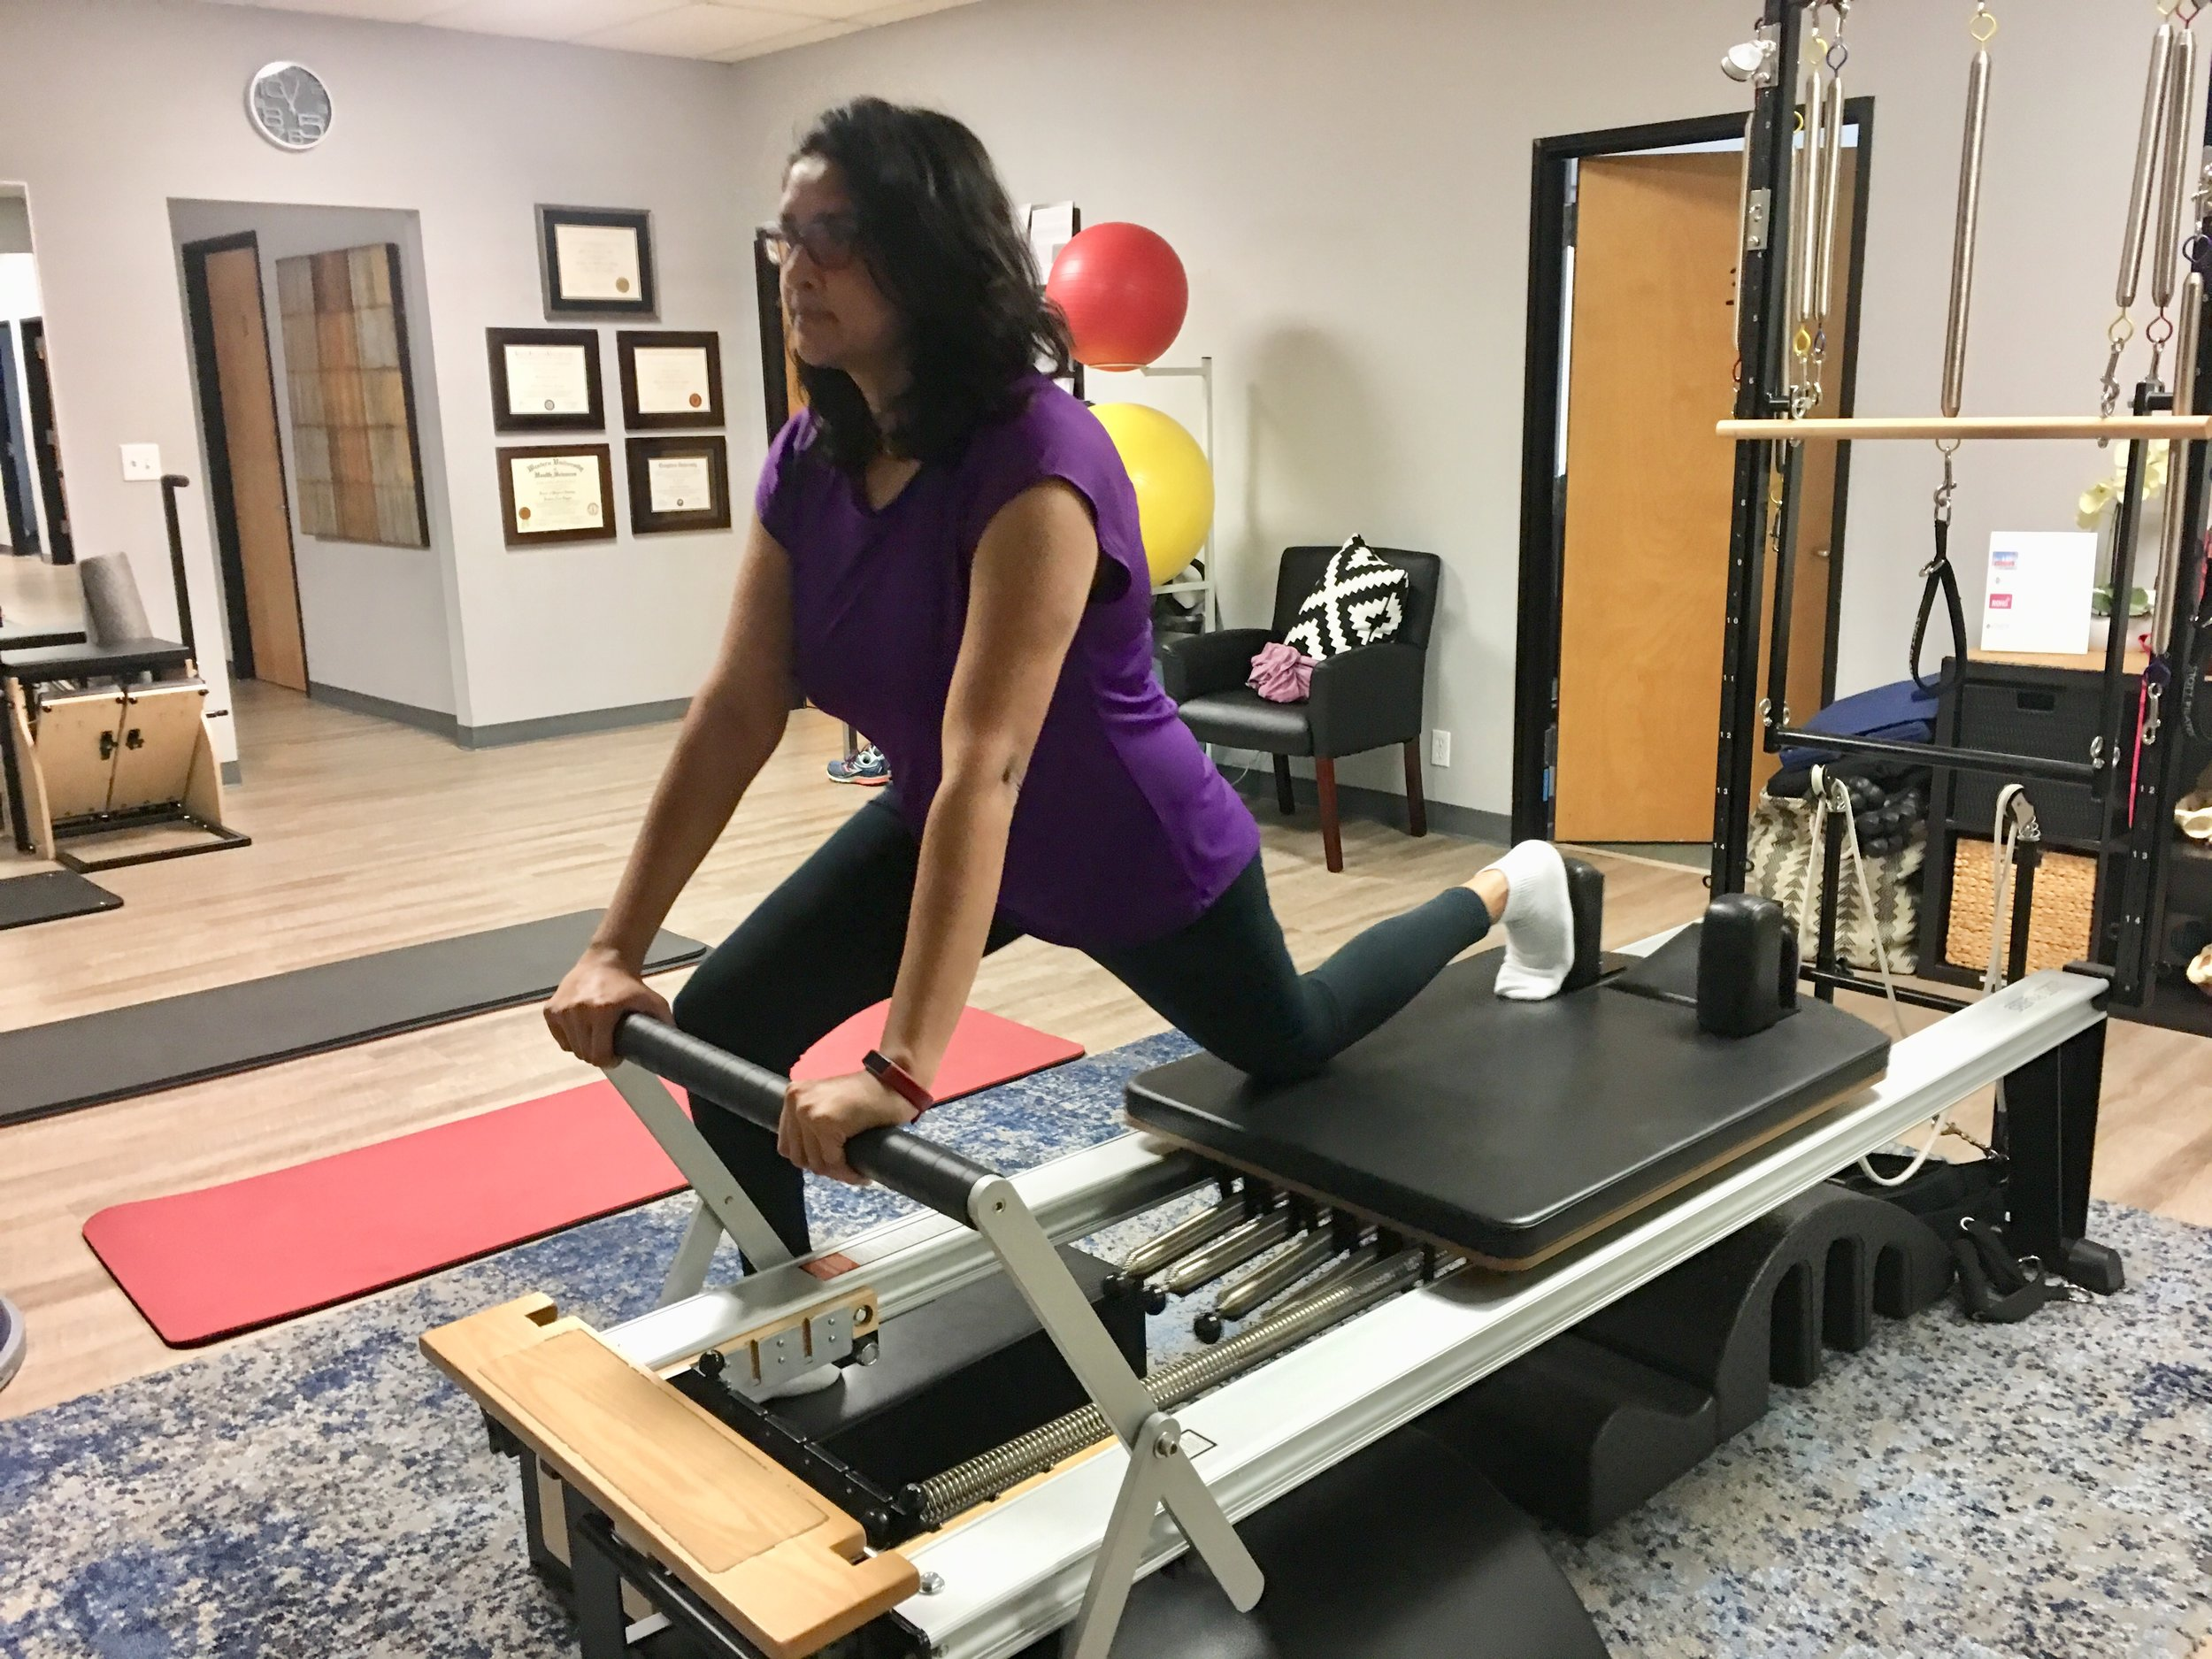 Aneeka's personalized healing plan incorporates various treatment methods, including Pilates.